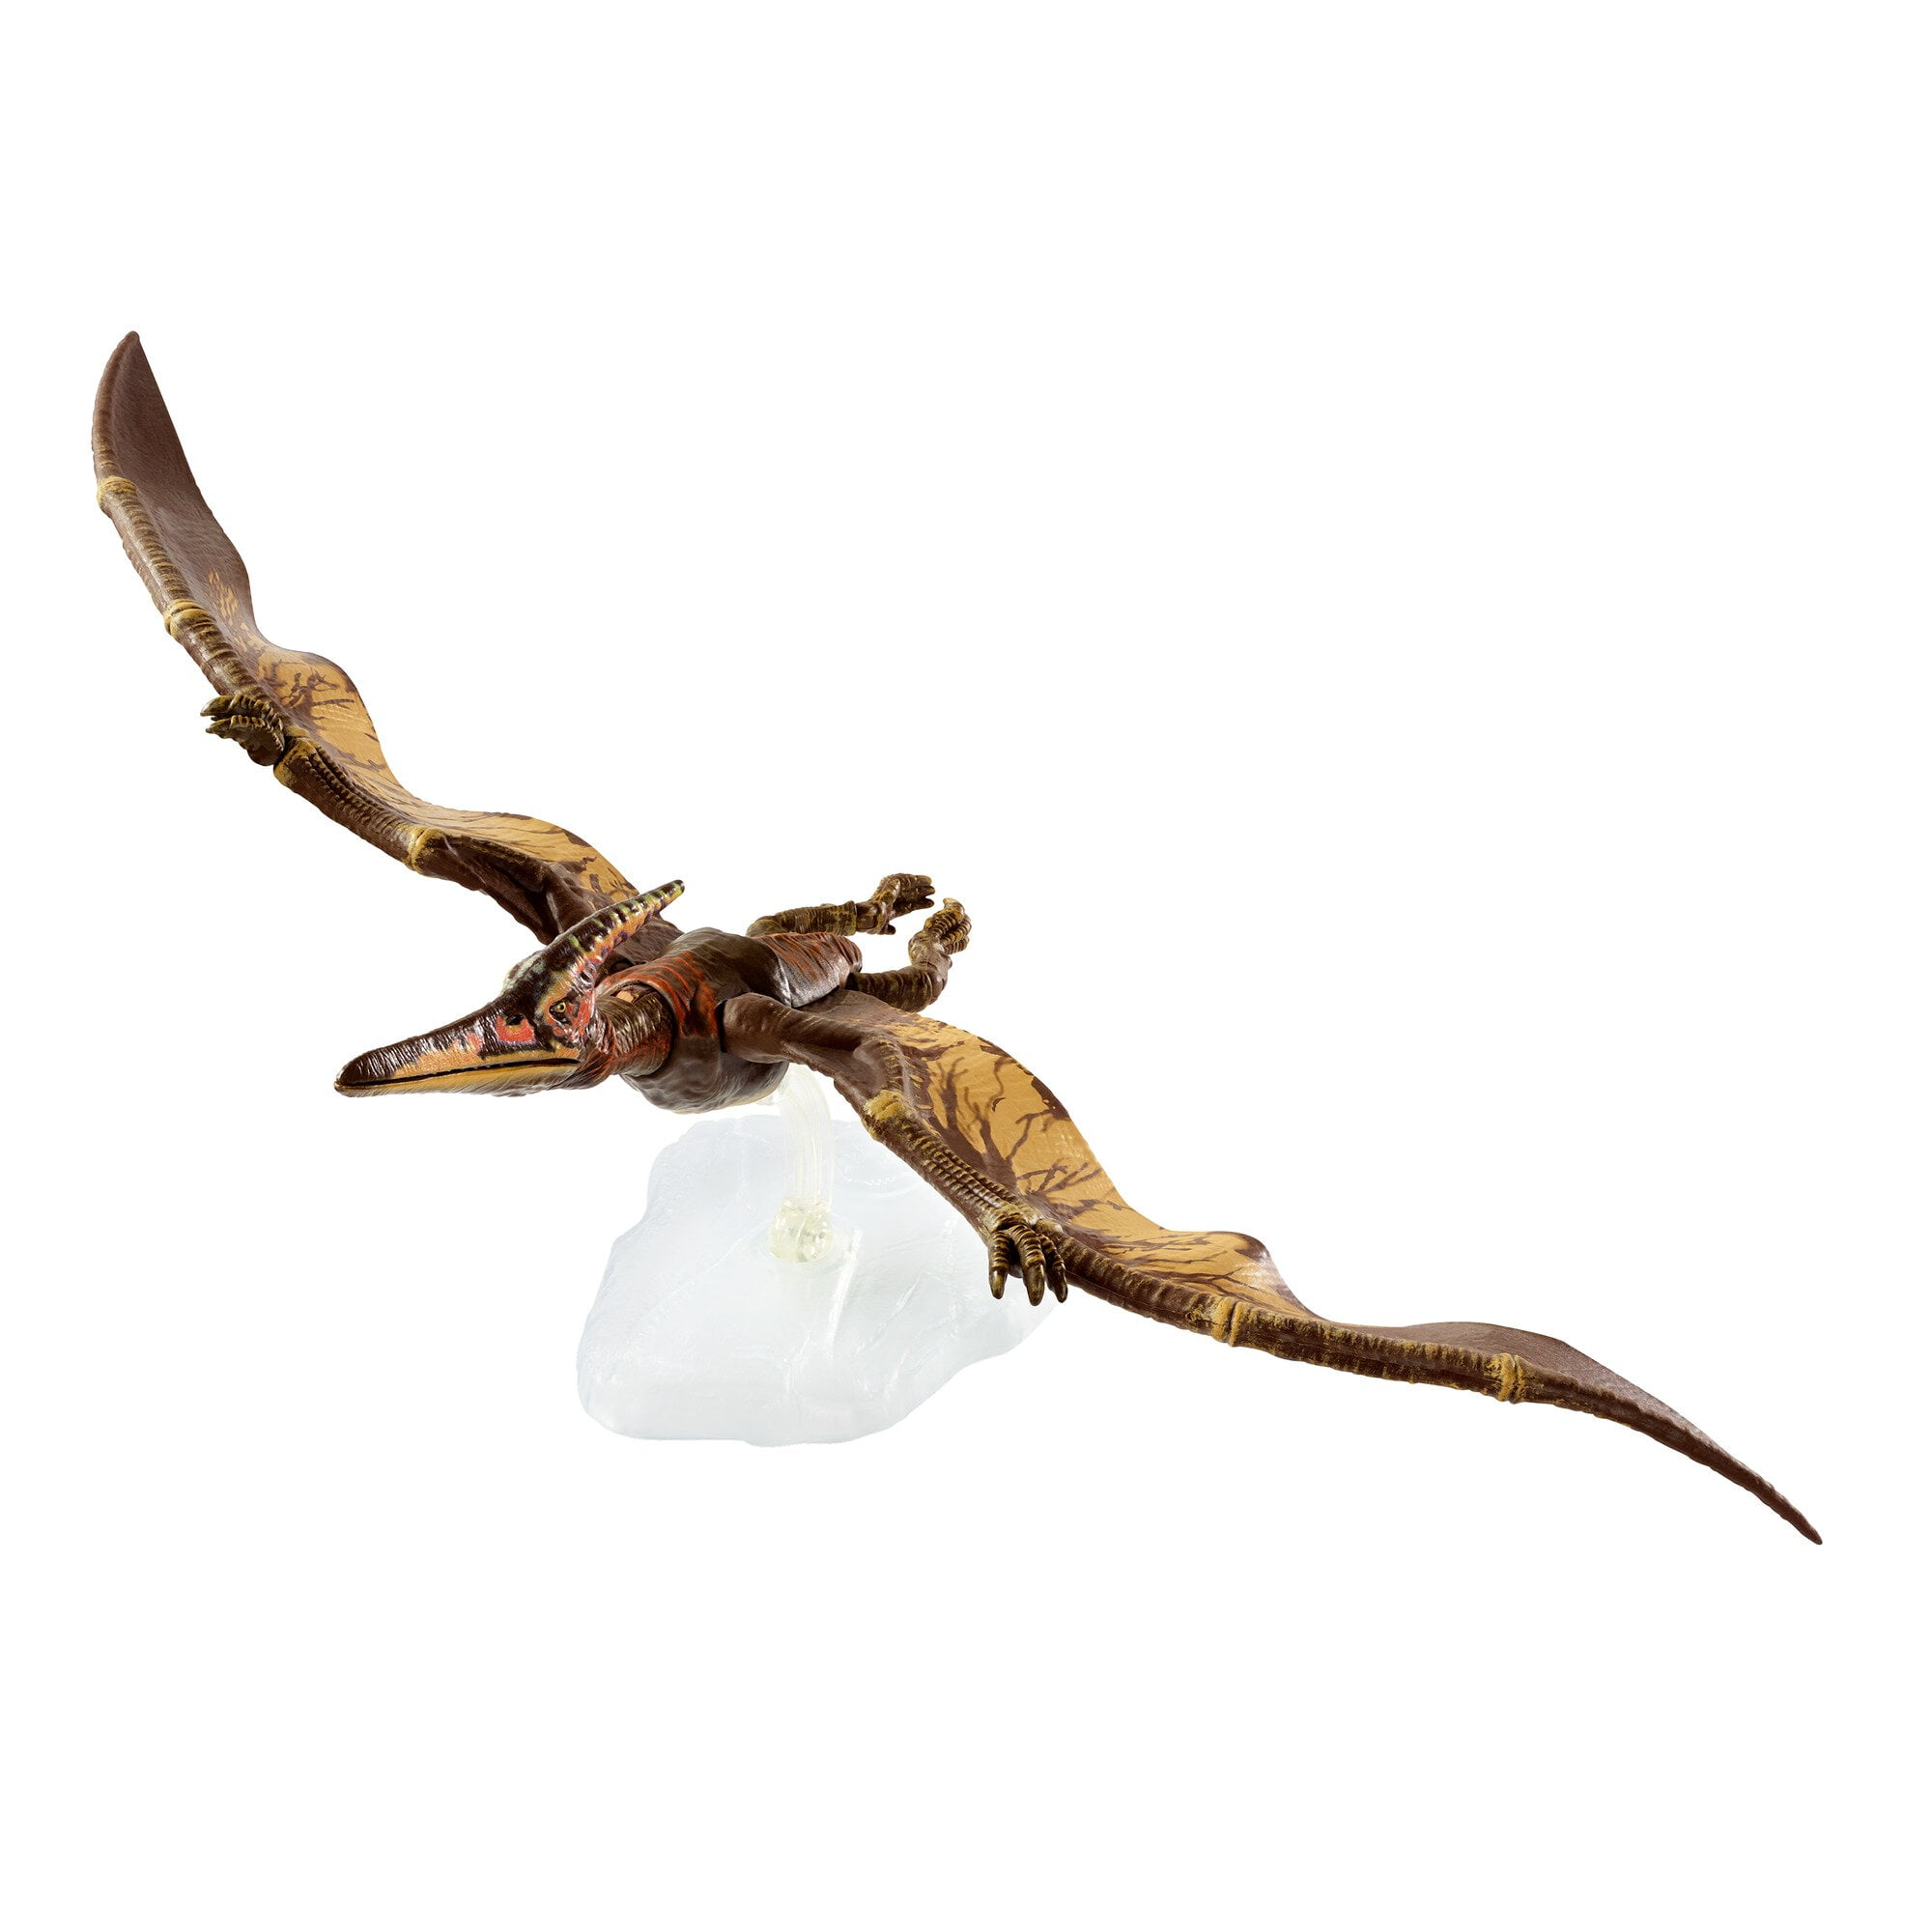 Jurassic World Amber Collection Pteranodon 6-In/15.24-Cm Action Figure